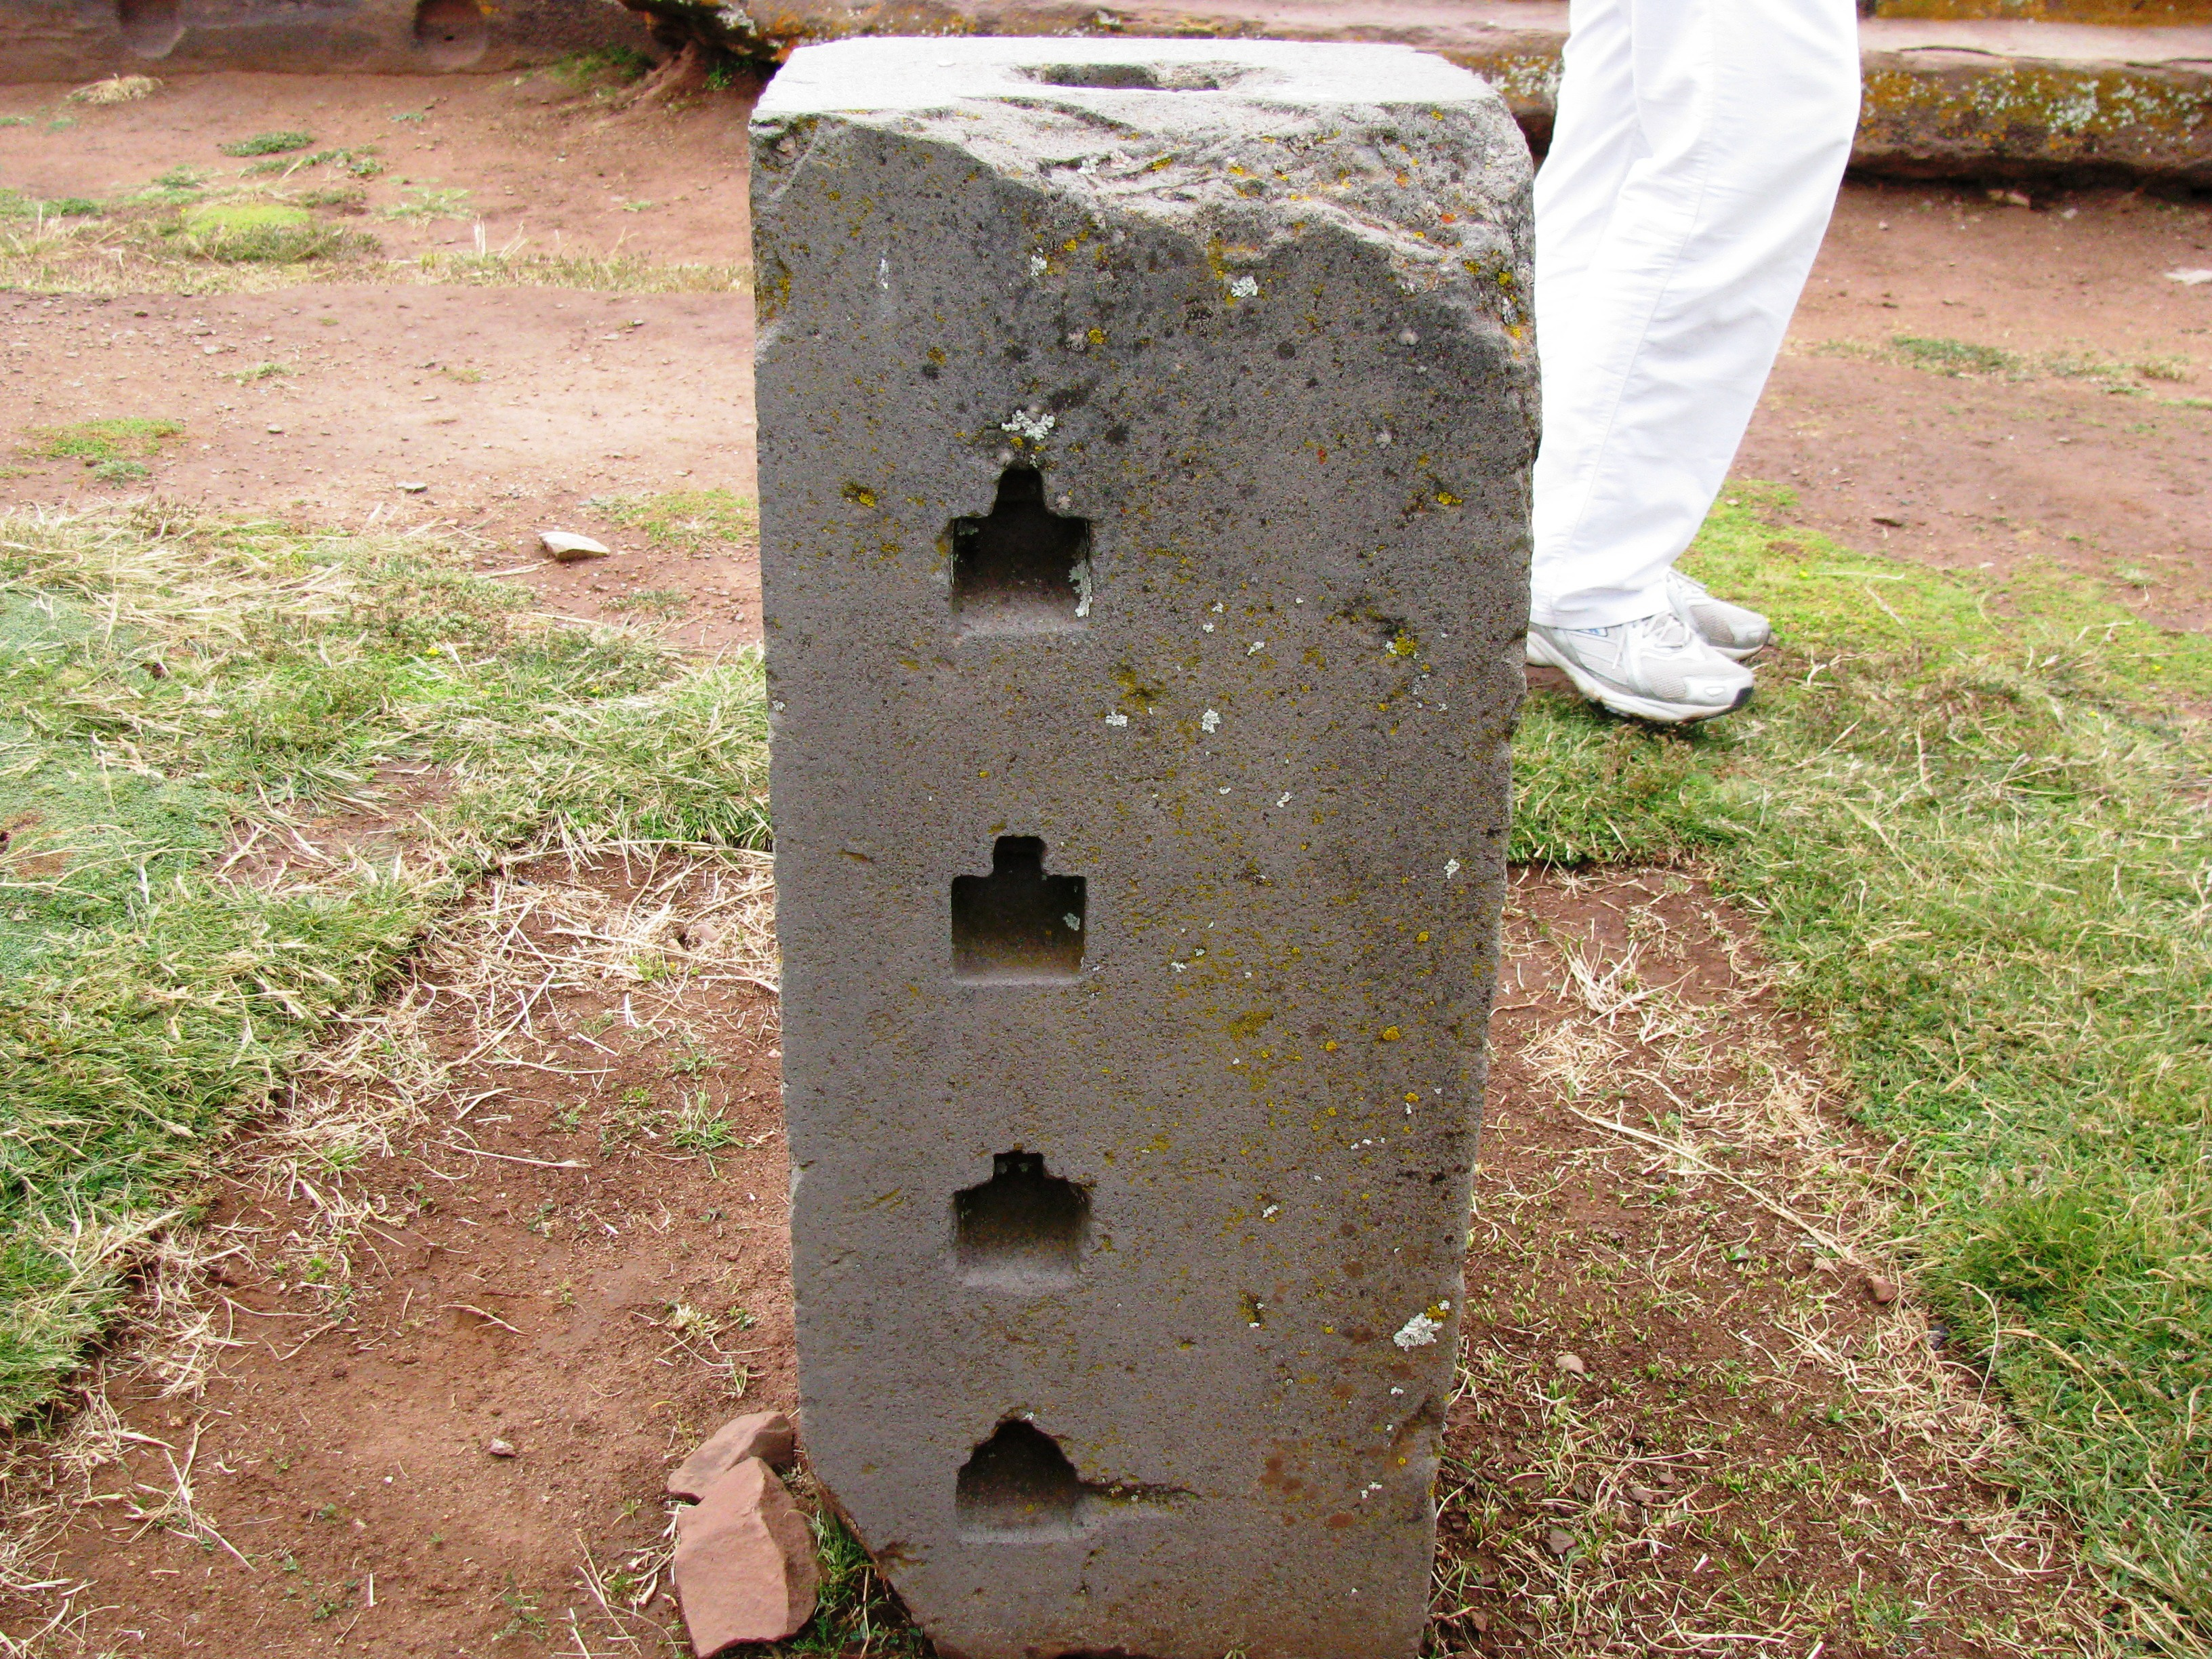 Machined holes cut into stone at Puma Punku - Ancient Mystery